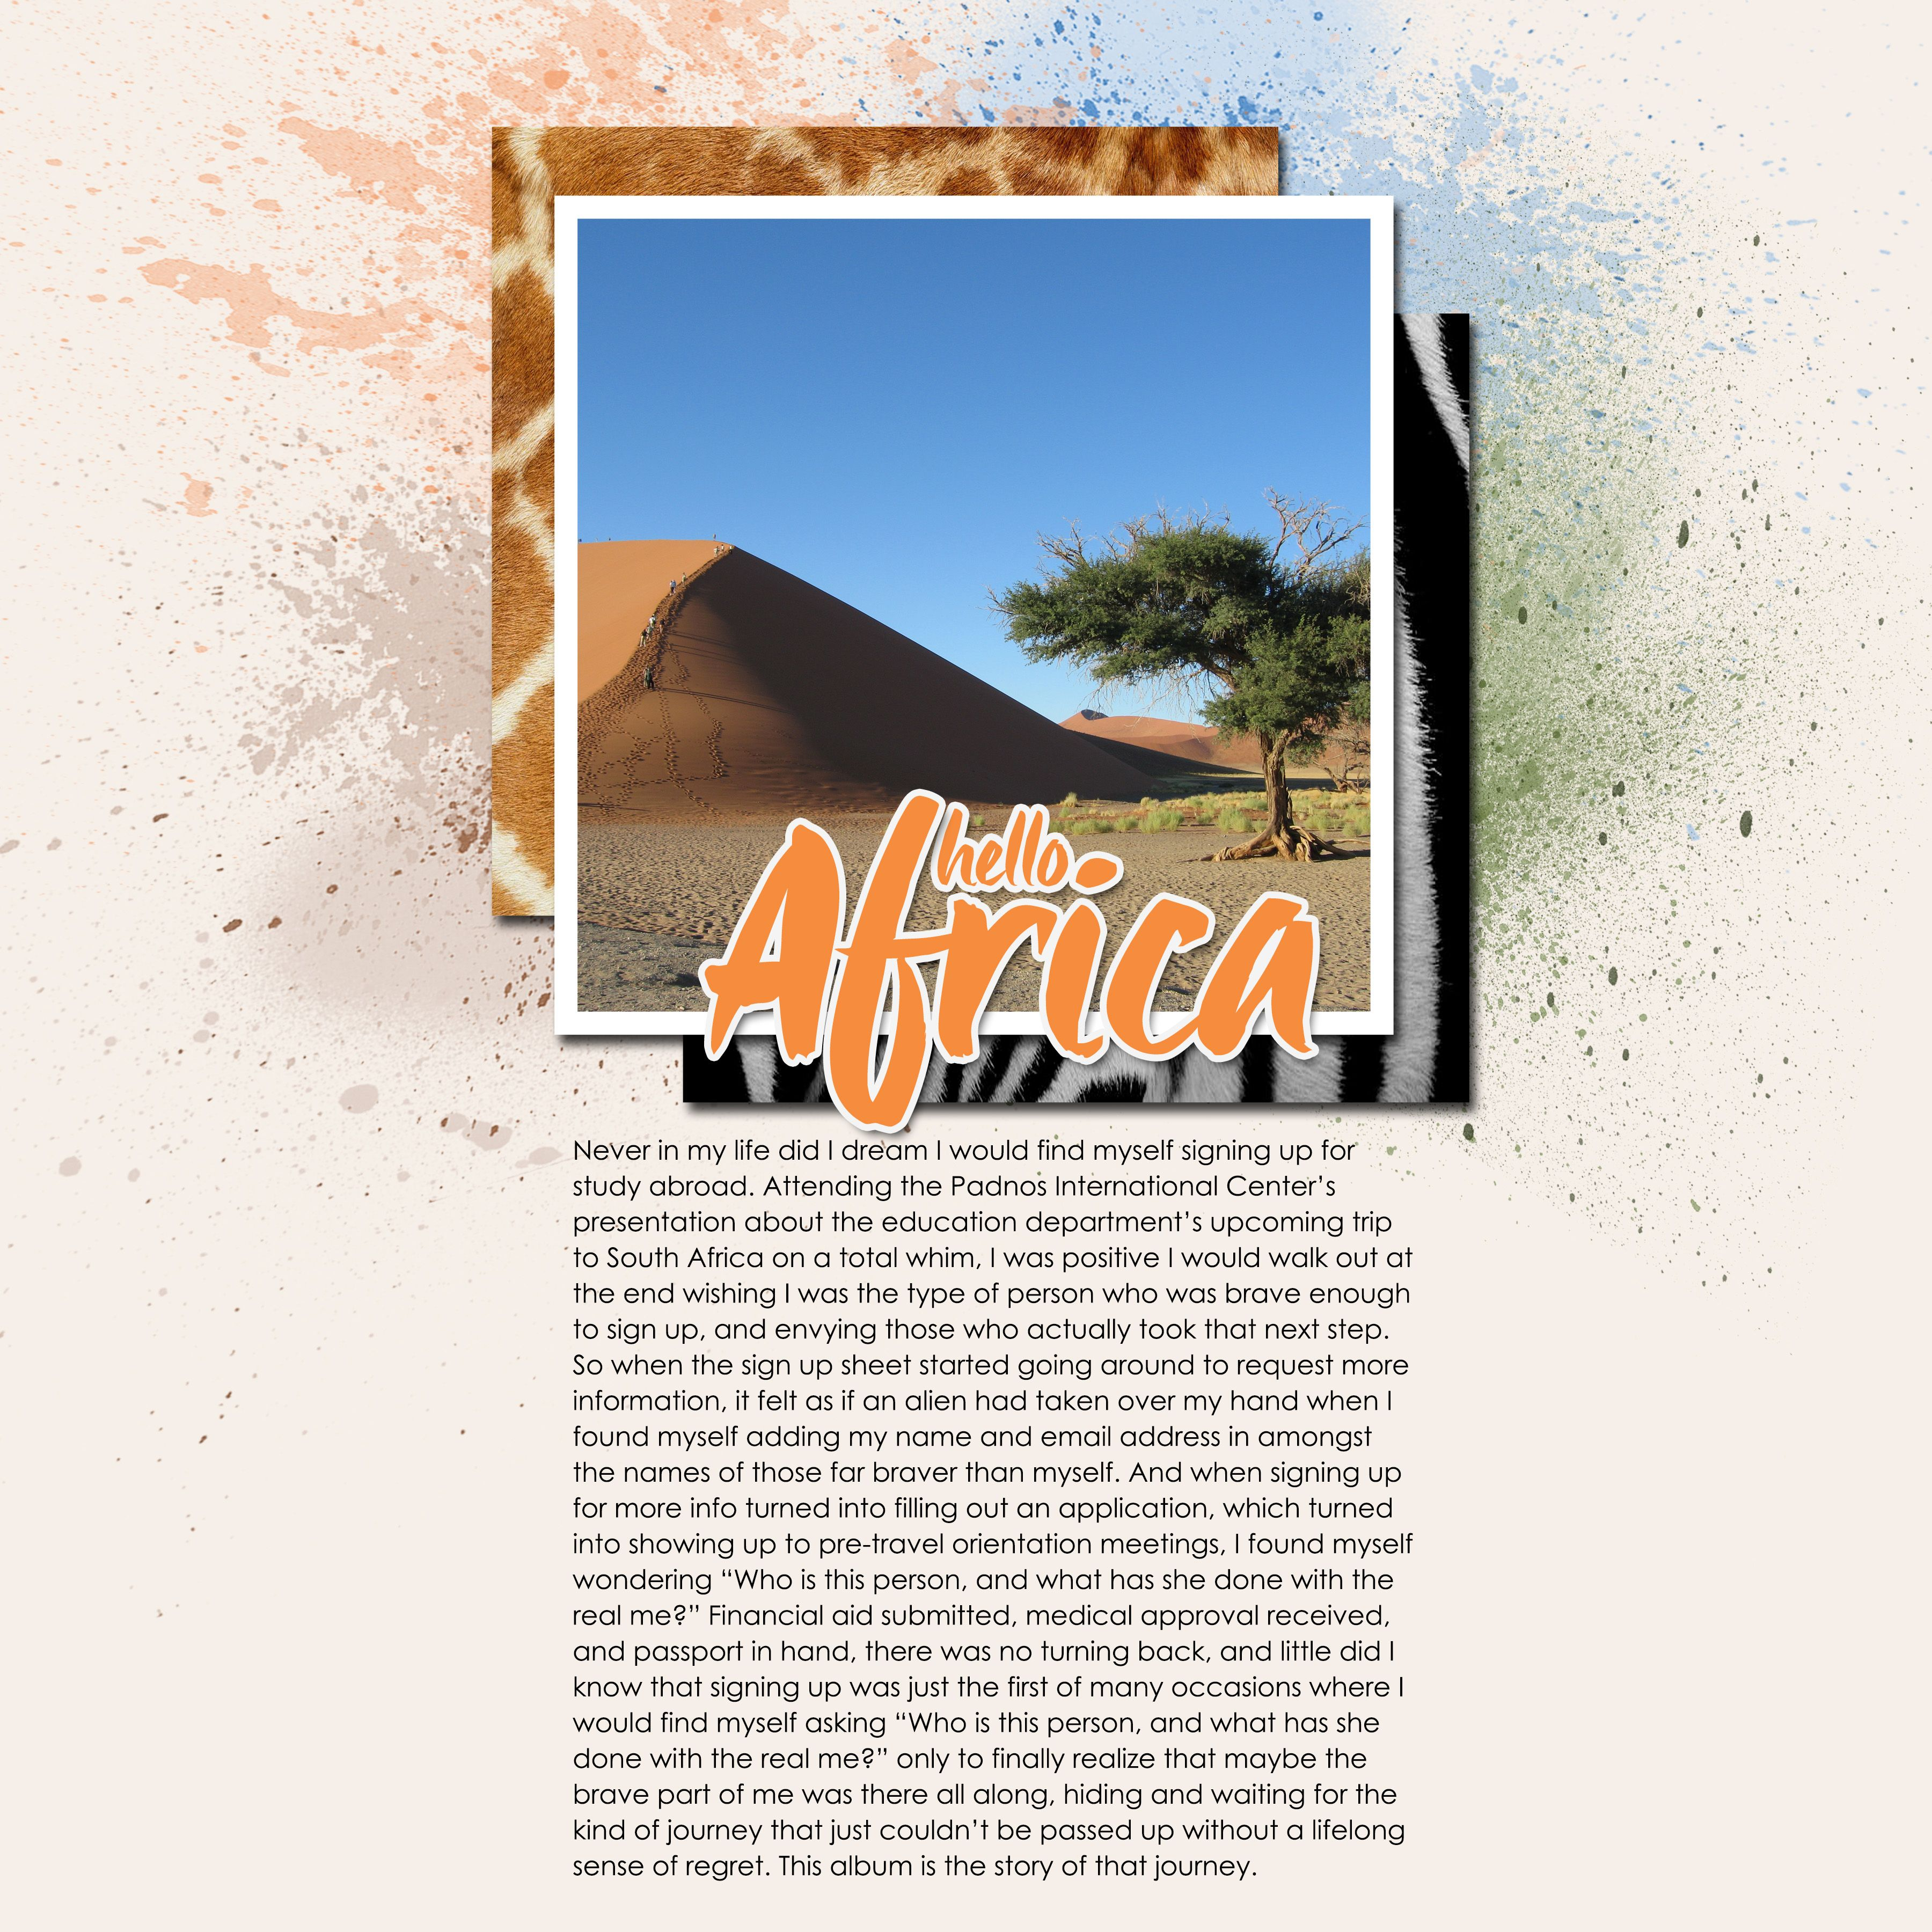 Travel Scrapbooking: An Africa Study-Abroad Album - Intro page | Marmalade Mementos